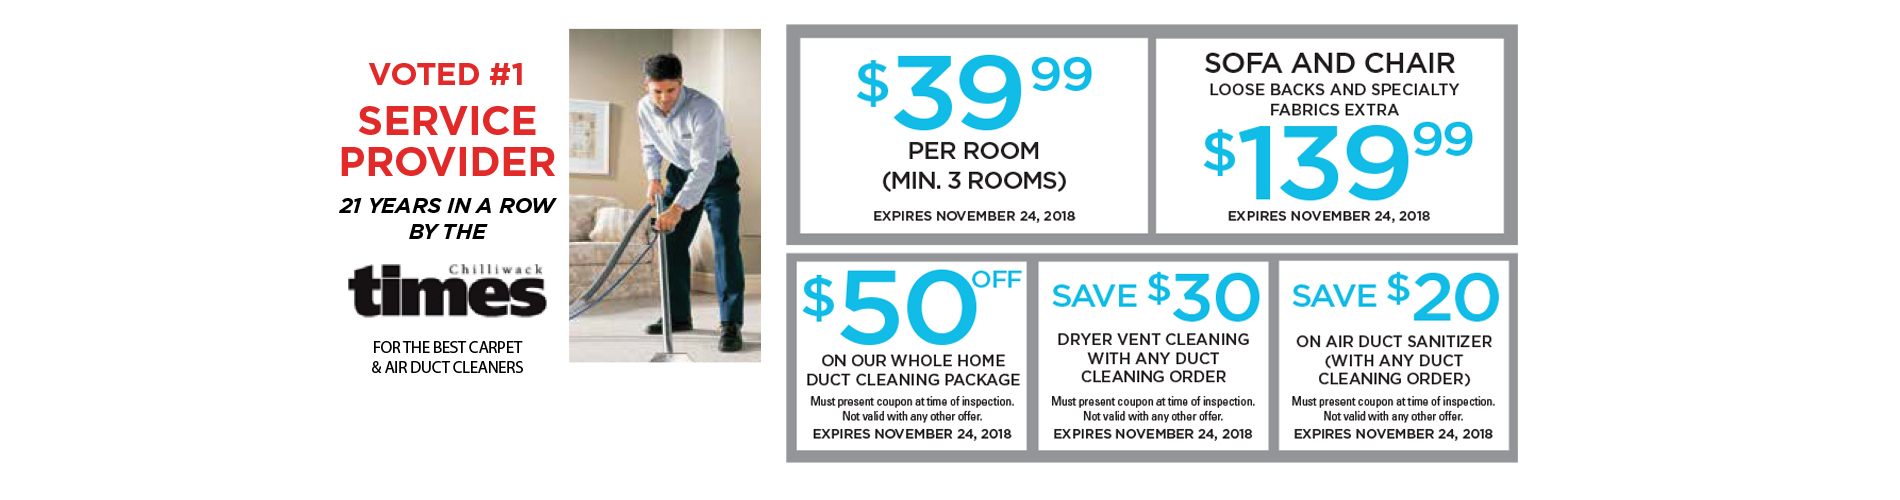 New Look Home Cleaning Services specials October November